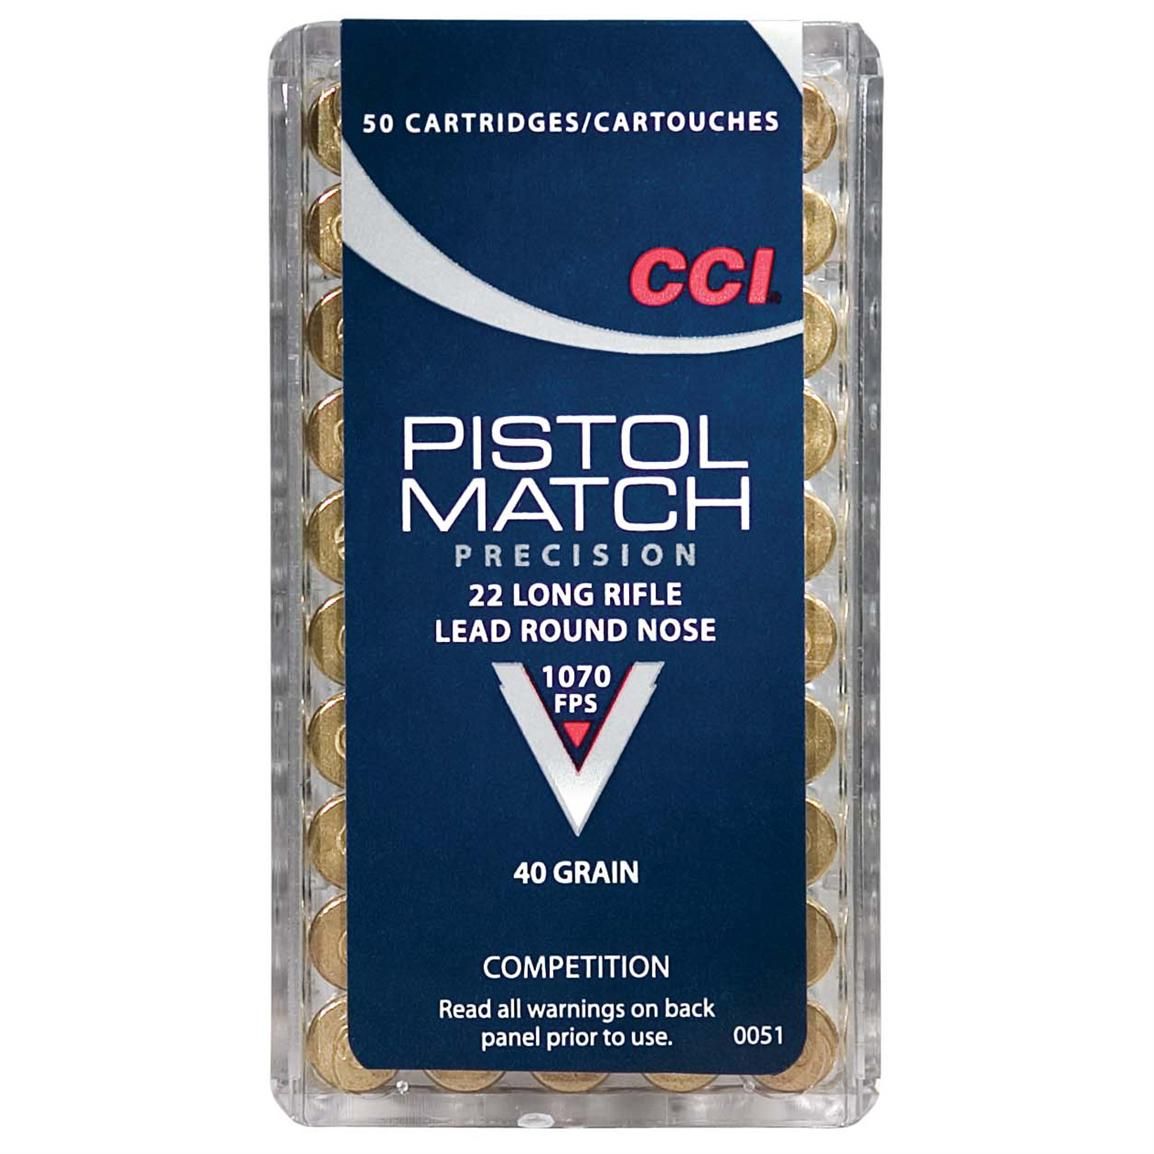 CCI Pistol Match, .22LR, LRN, 40 Grain, 50 Rounds